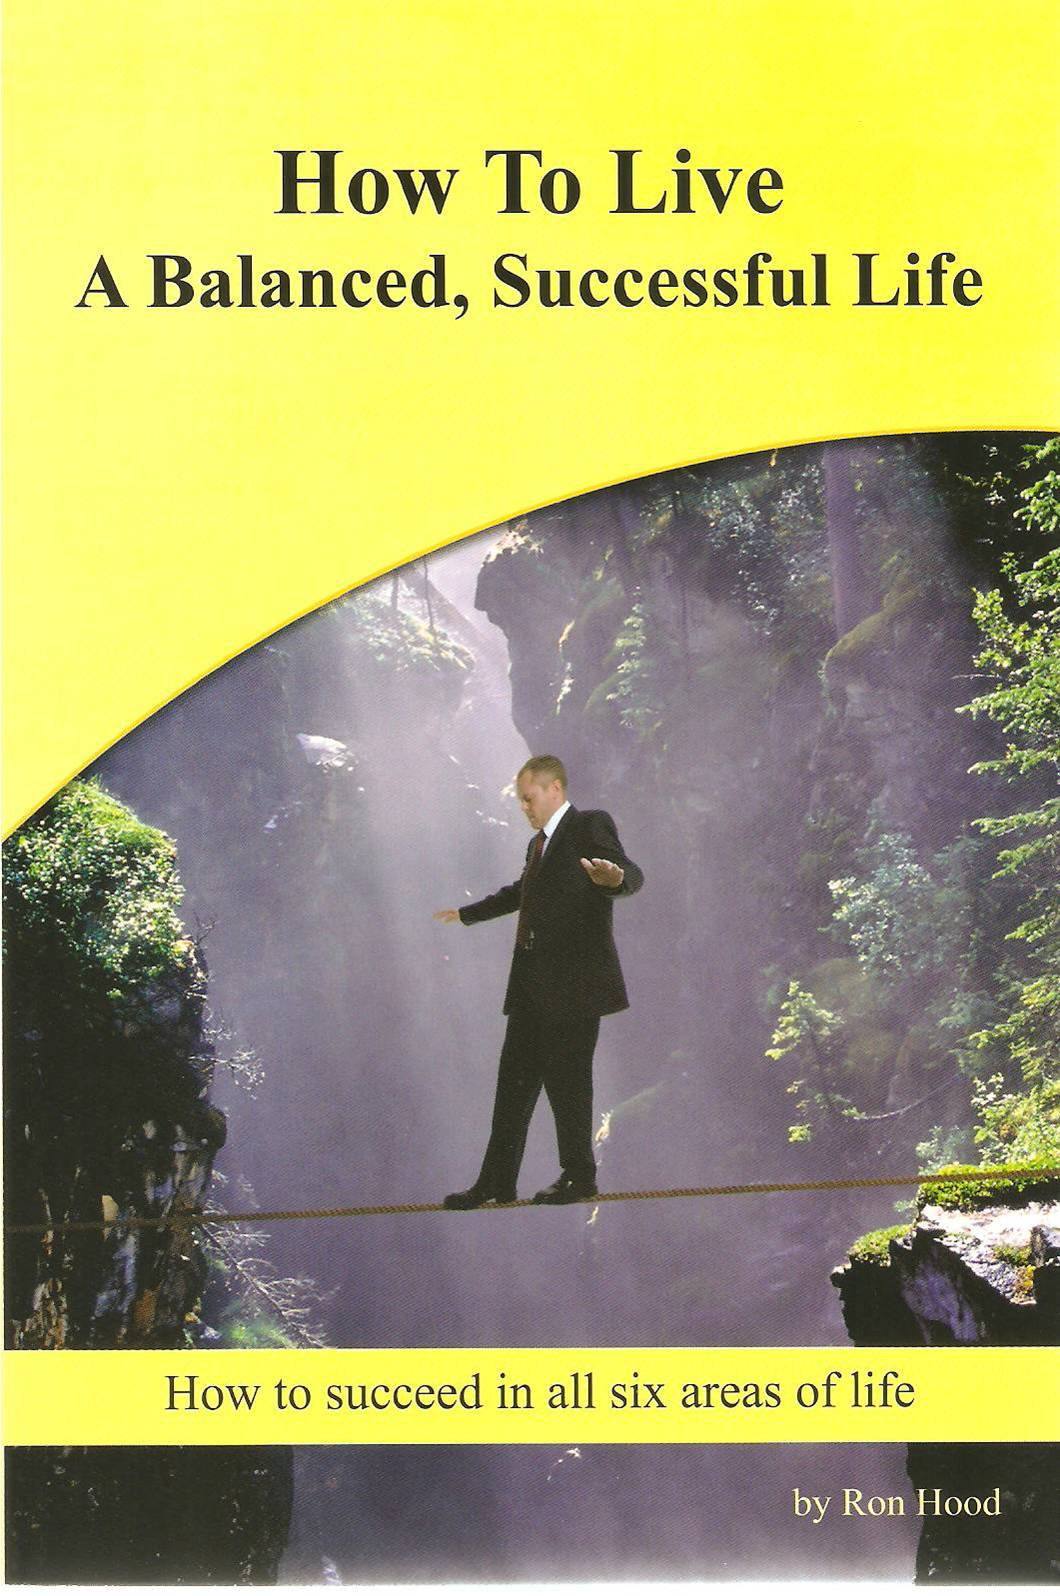 How to Live a Balanced, Successful Life